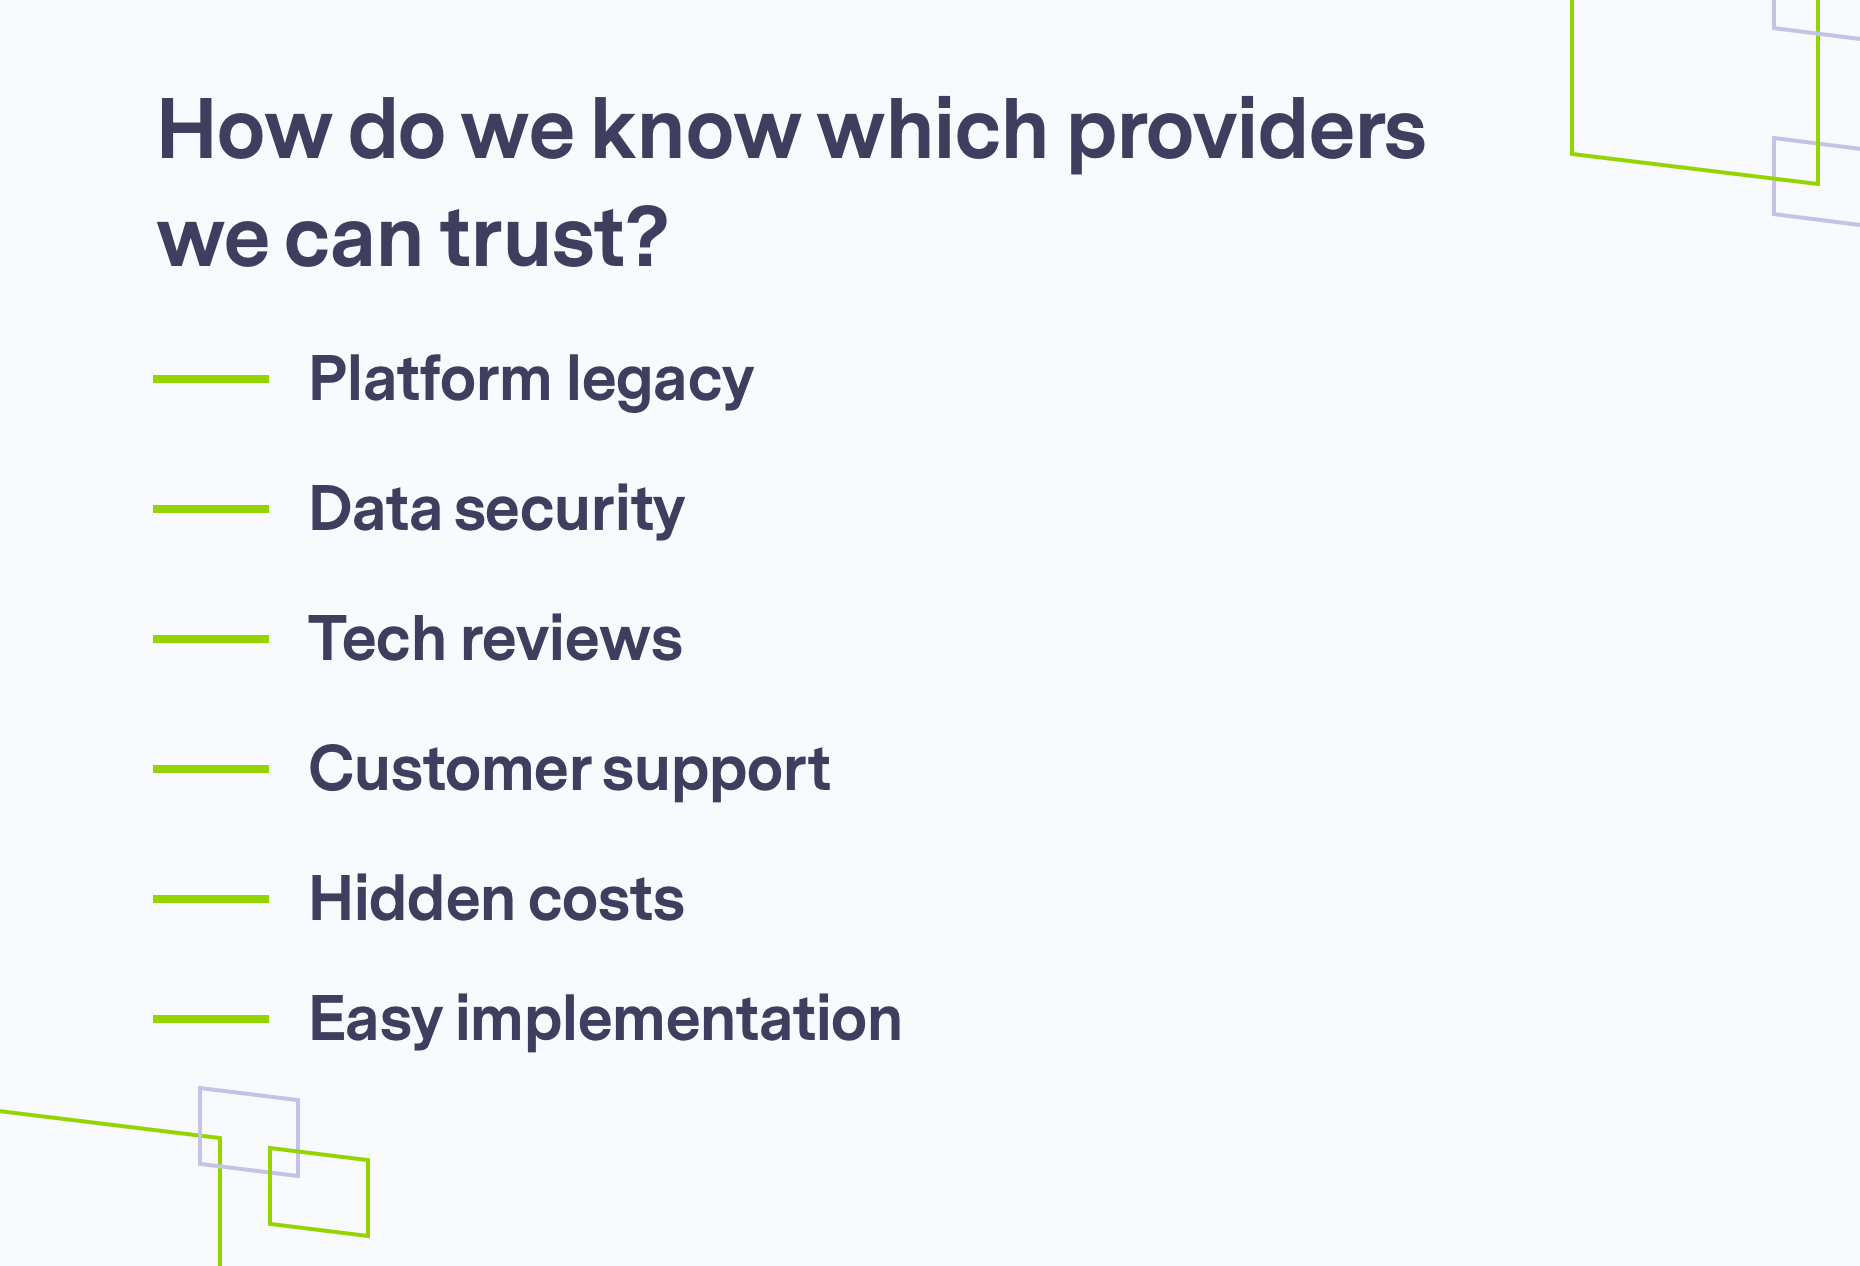 How to trust providers, brand shapes on grey